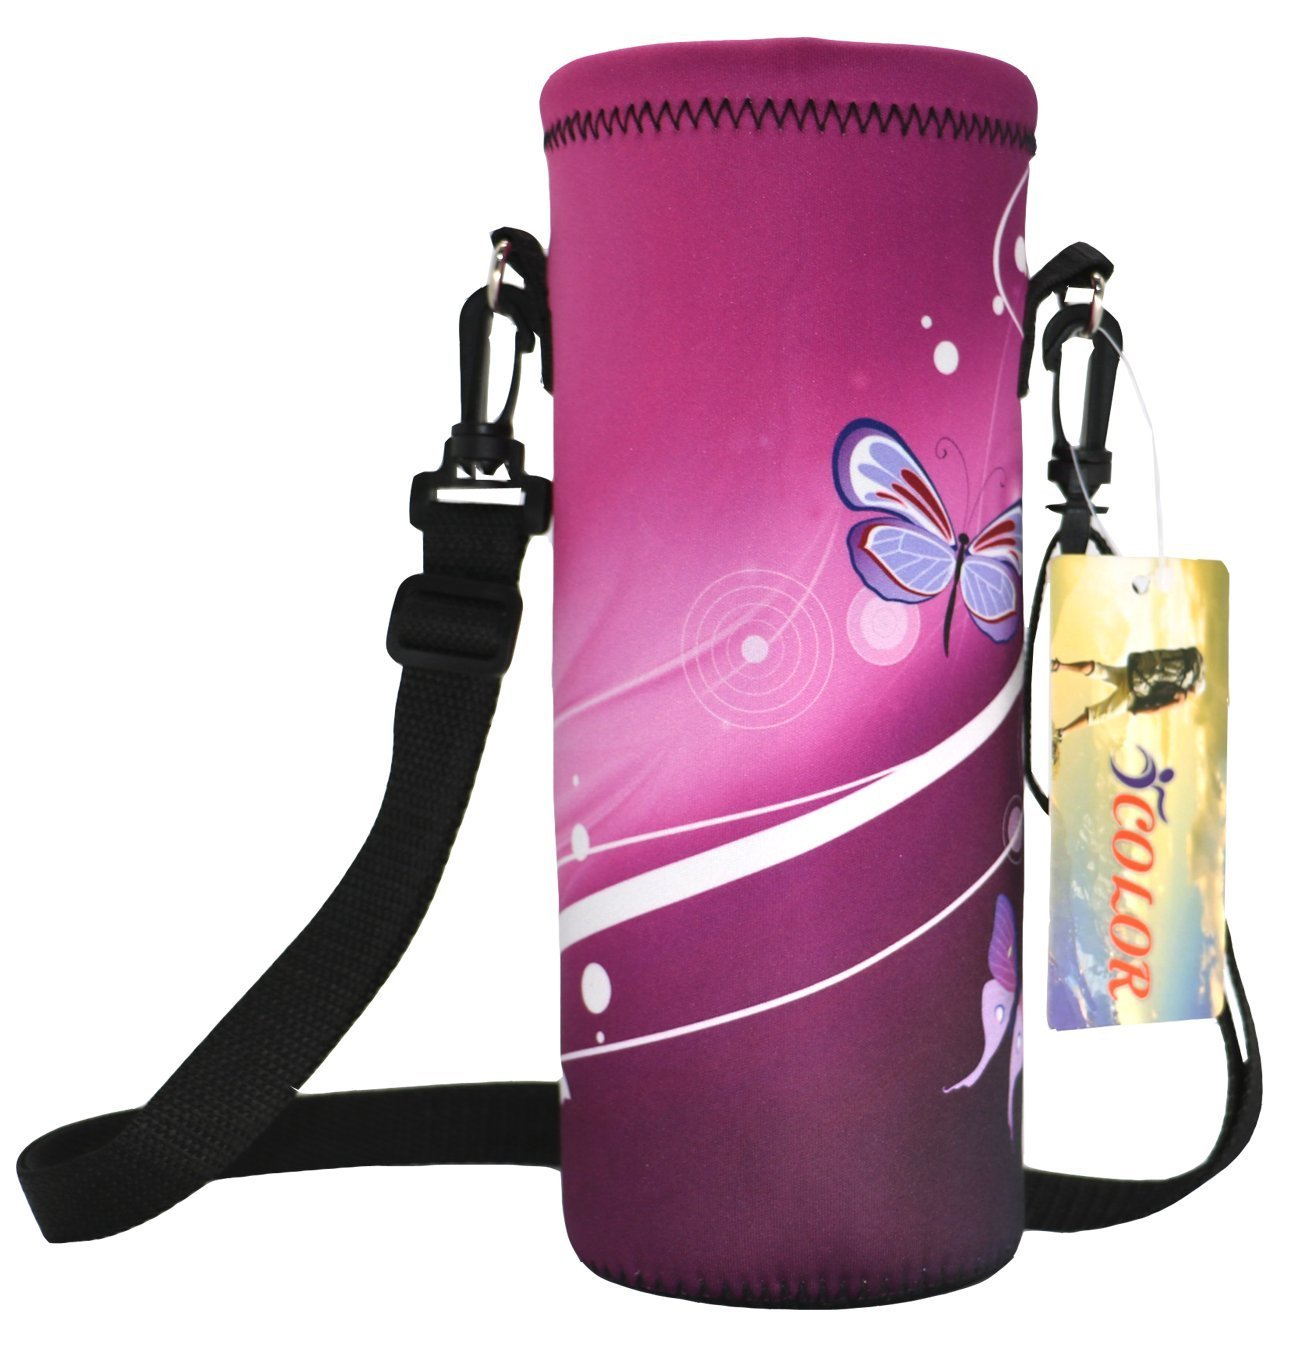 2d2ed4e18945 ICOLOR Water Bottle Bag Carrier - 750ML 24oz (1000ML 34oz) Drink Milk Water  Bottle Storage Container for Kids Adults - Neoprene Sling Insulated Sports  Water ...